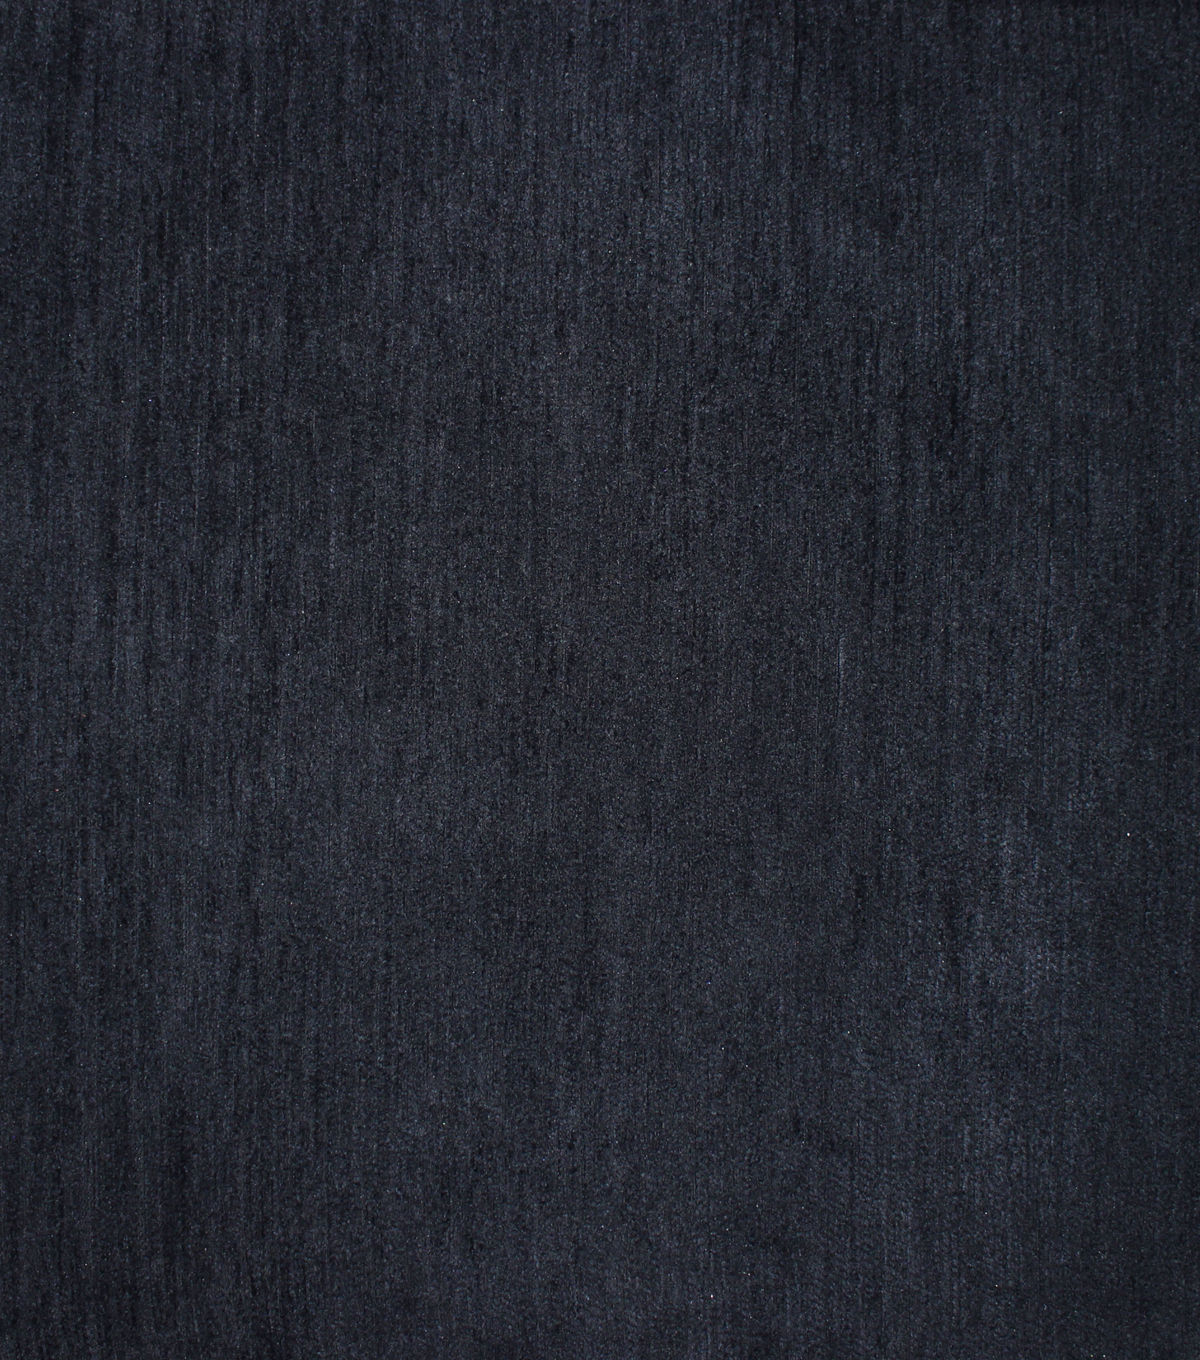 Home Decor 8\u0022x8\u0022 Fabric Swatch-Upholstery Fabric Barrow M8291-5978 Ebony